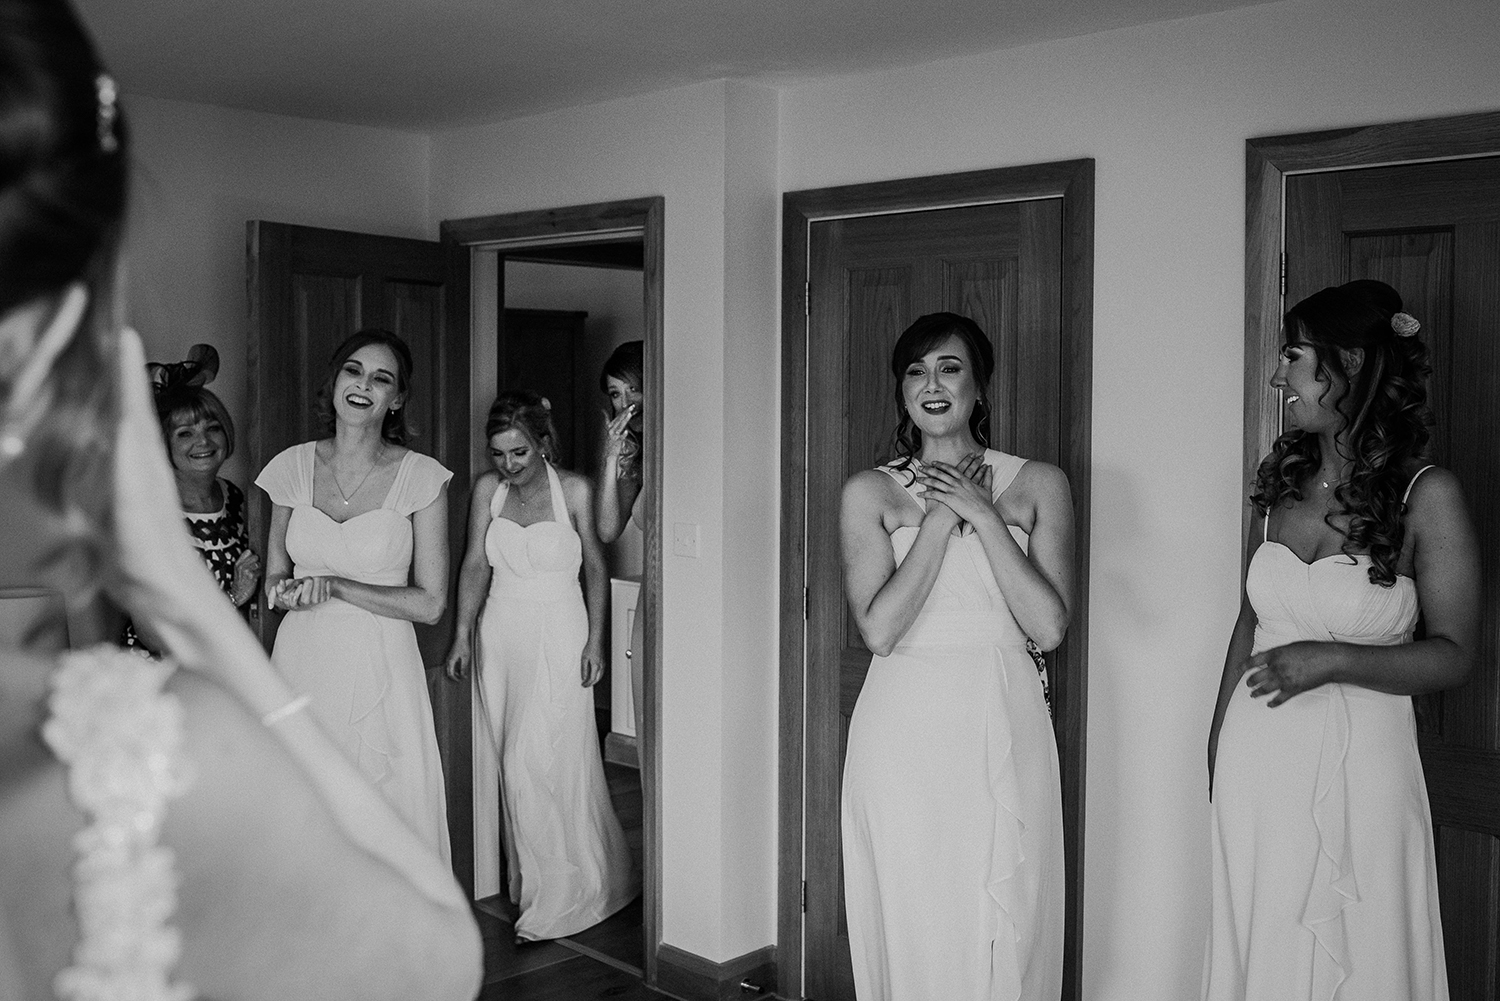 bw photo of the bridesmaids reaction to the bride in her dress